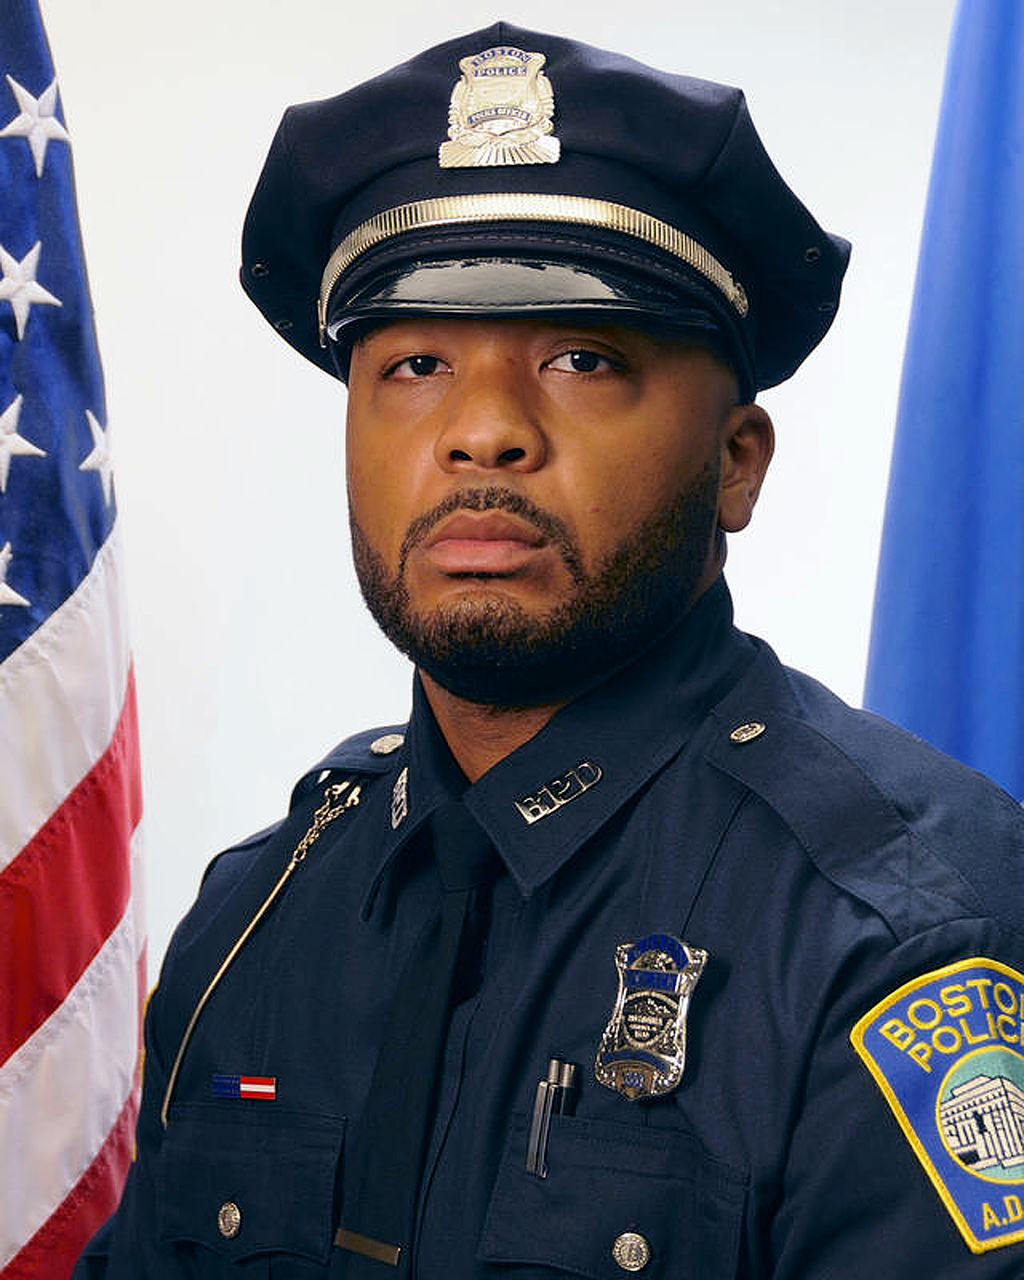 This undated official portrait released by the Boston Police Department shows policer officer Dennis Simmonds, who died on April 10, 20...